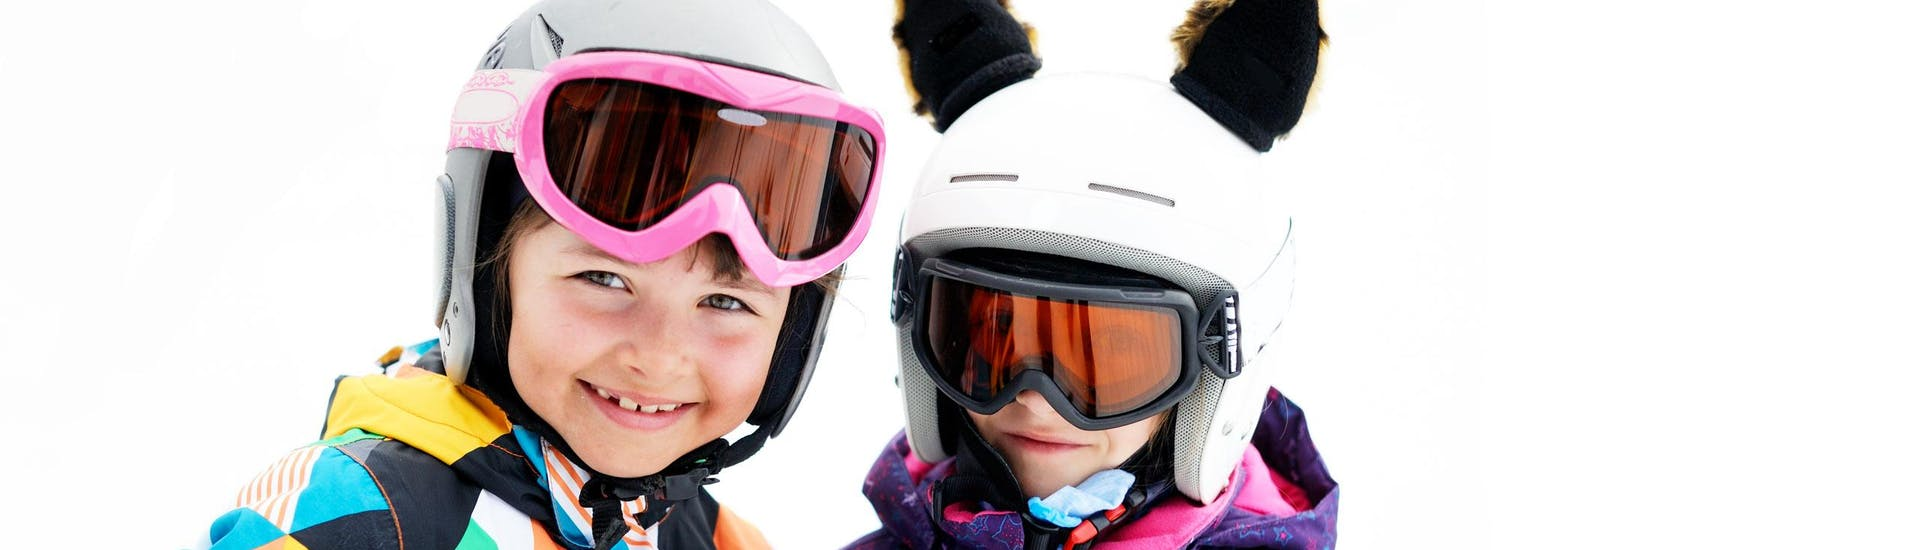 Two young children smiling at the camera during one of the Private Ski Lessons for Families organised by Active Snow Team Engelberg.